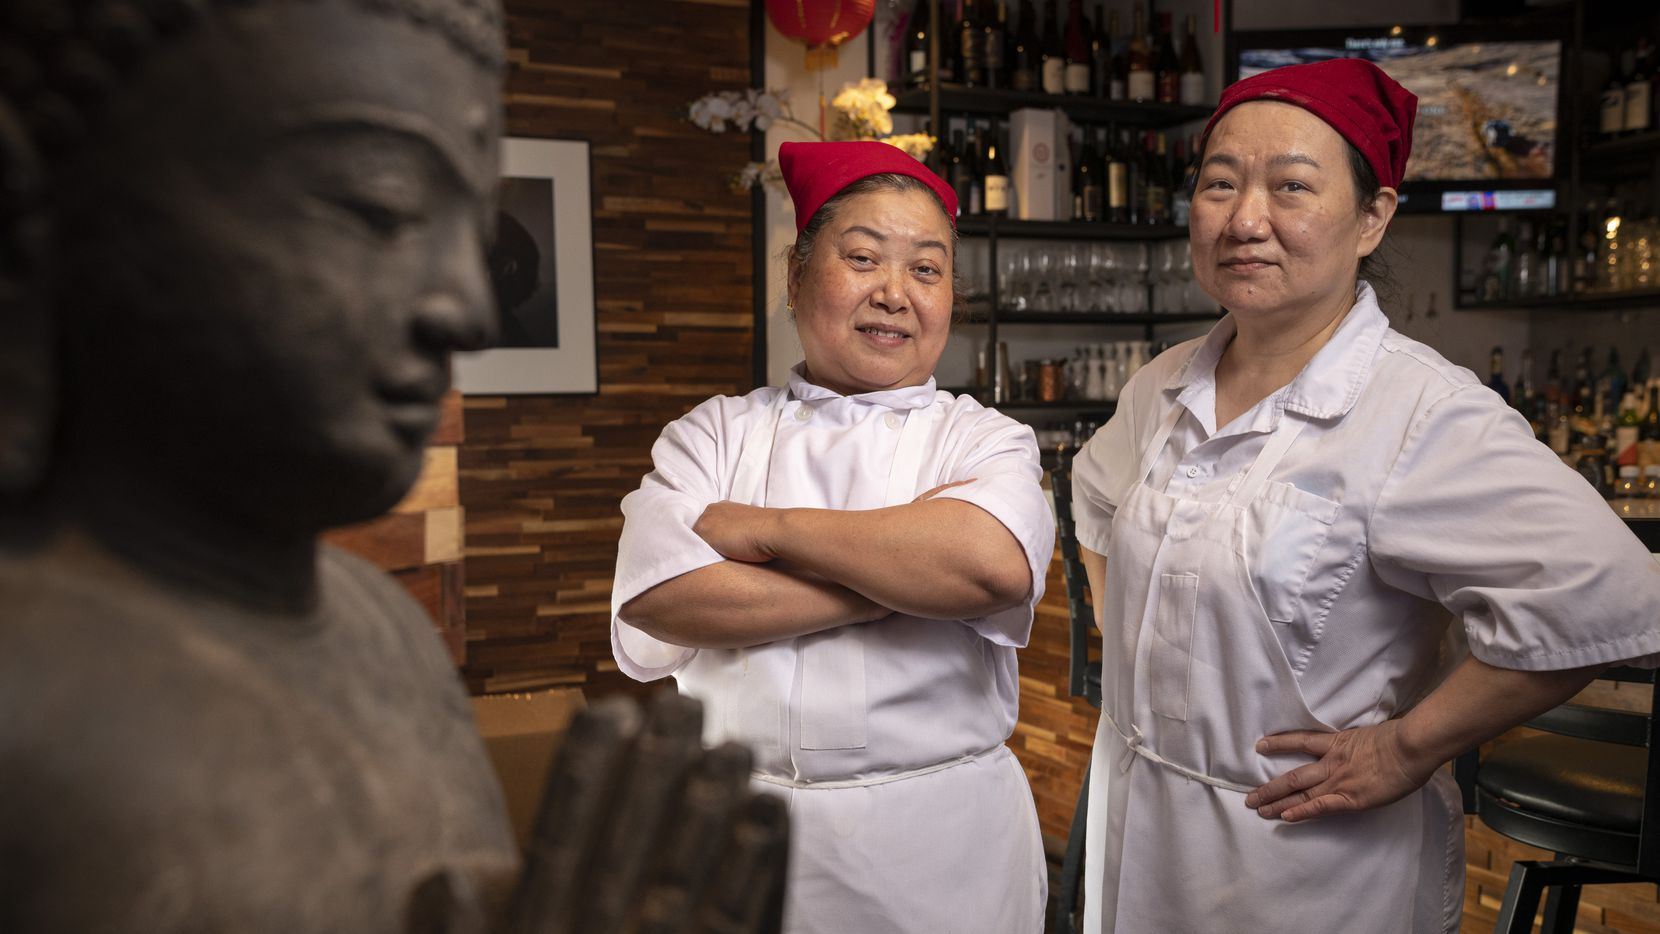 Dumpling makers Huajuan Shen, left, and Sophia Chen from Royal China restaurant in Dallas, on Tuesday, April 06, 2021.